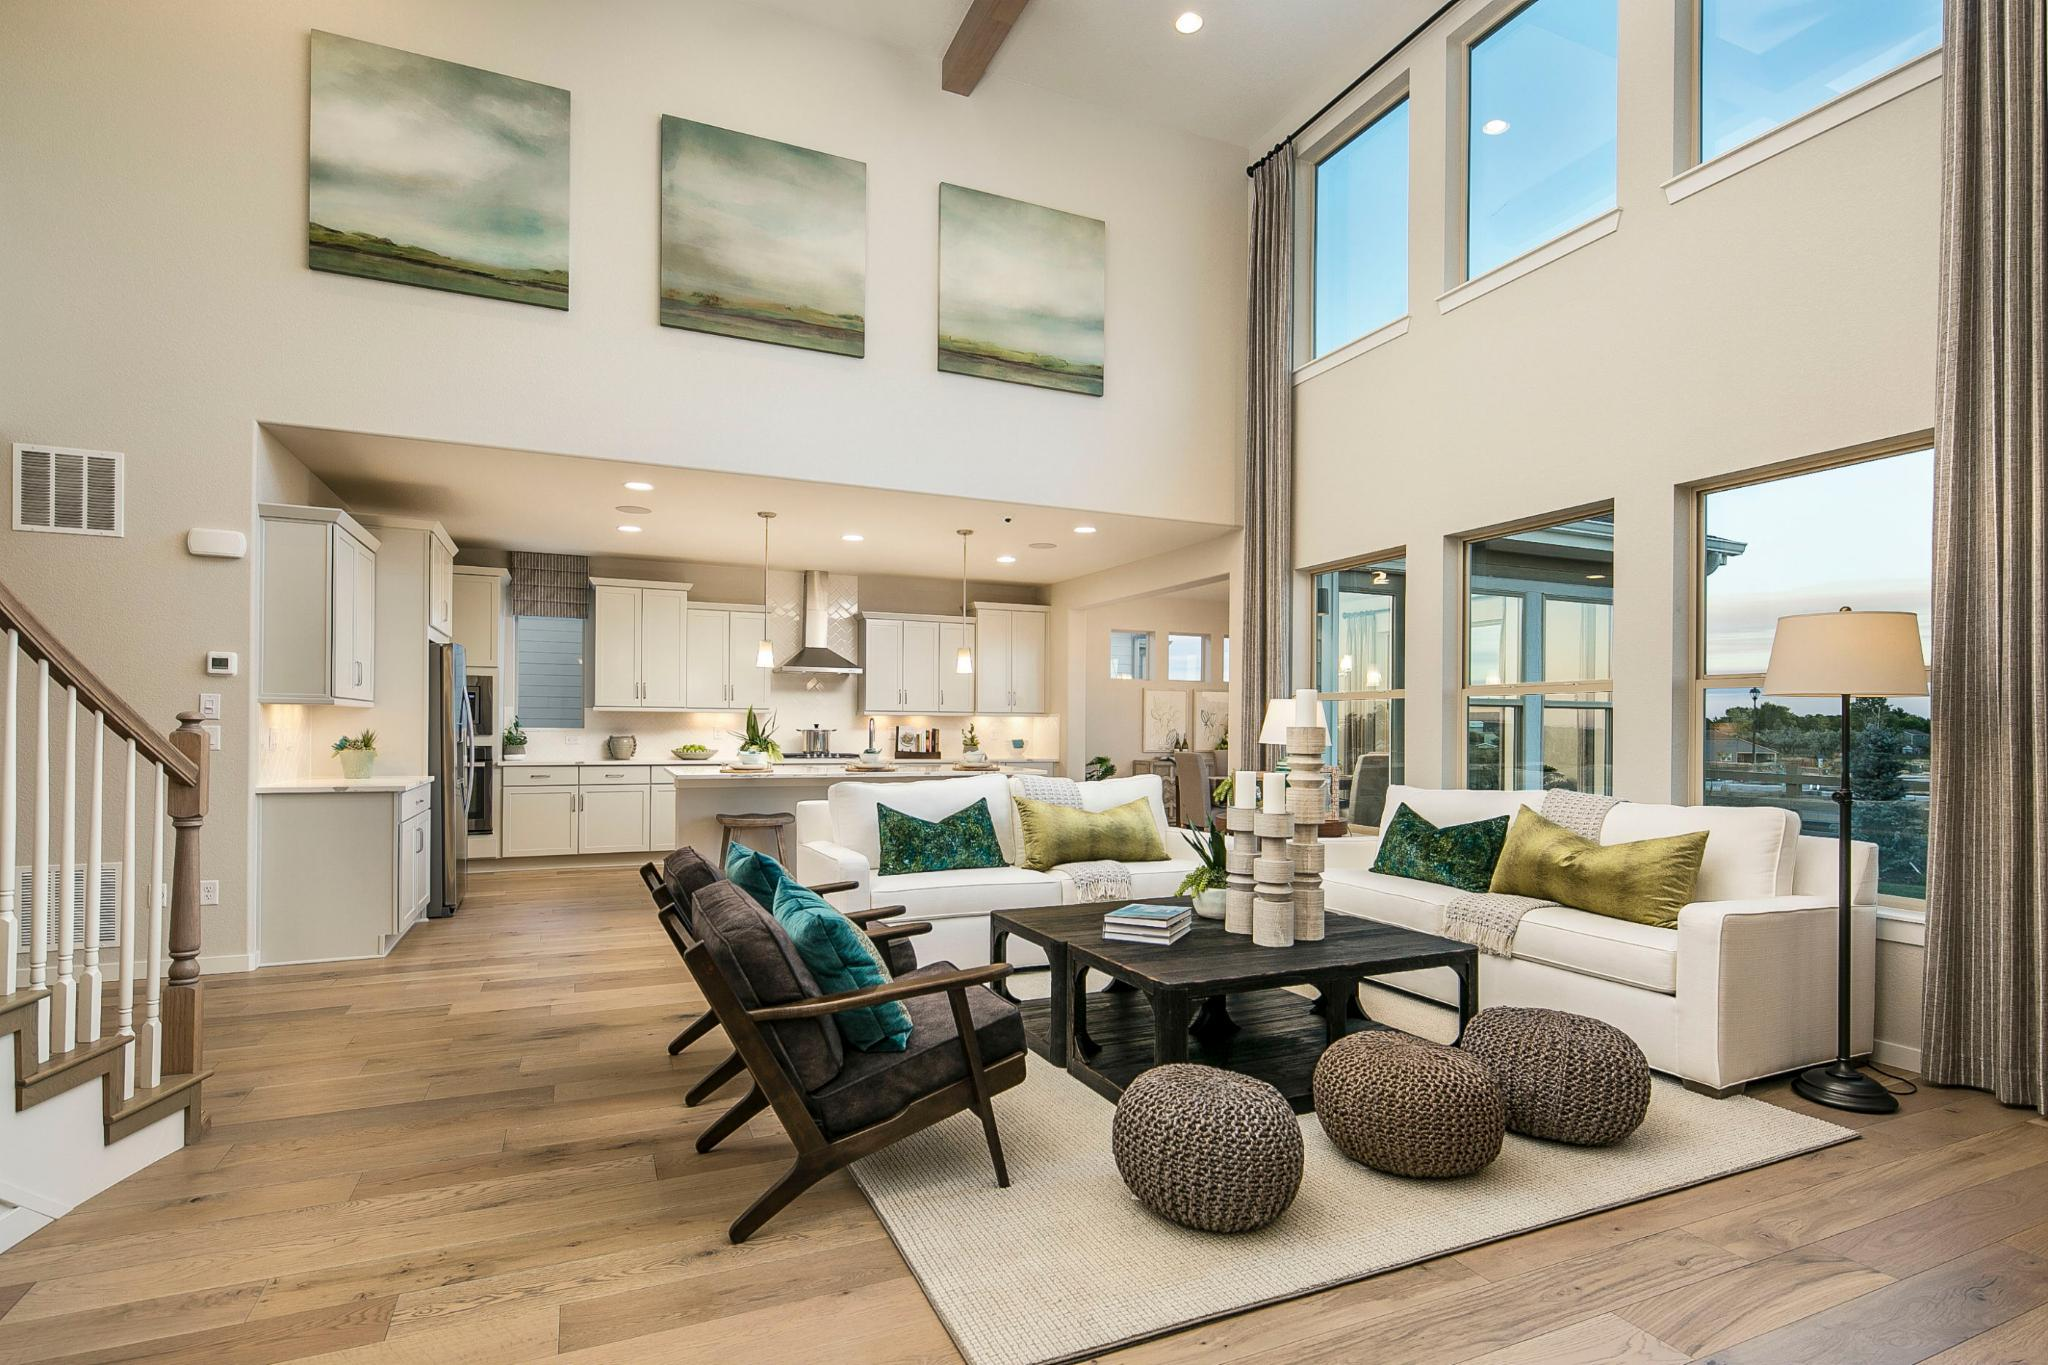 Living Area featured in the Plan C505 By American Legend Homes in Greeley, CO